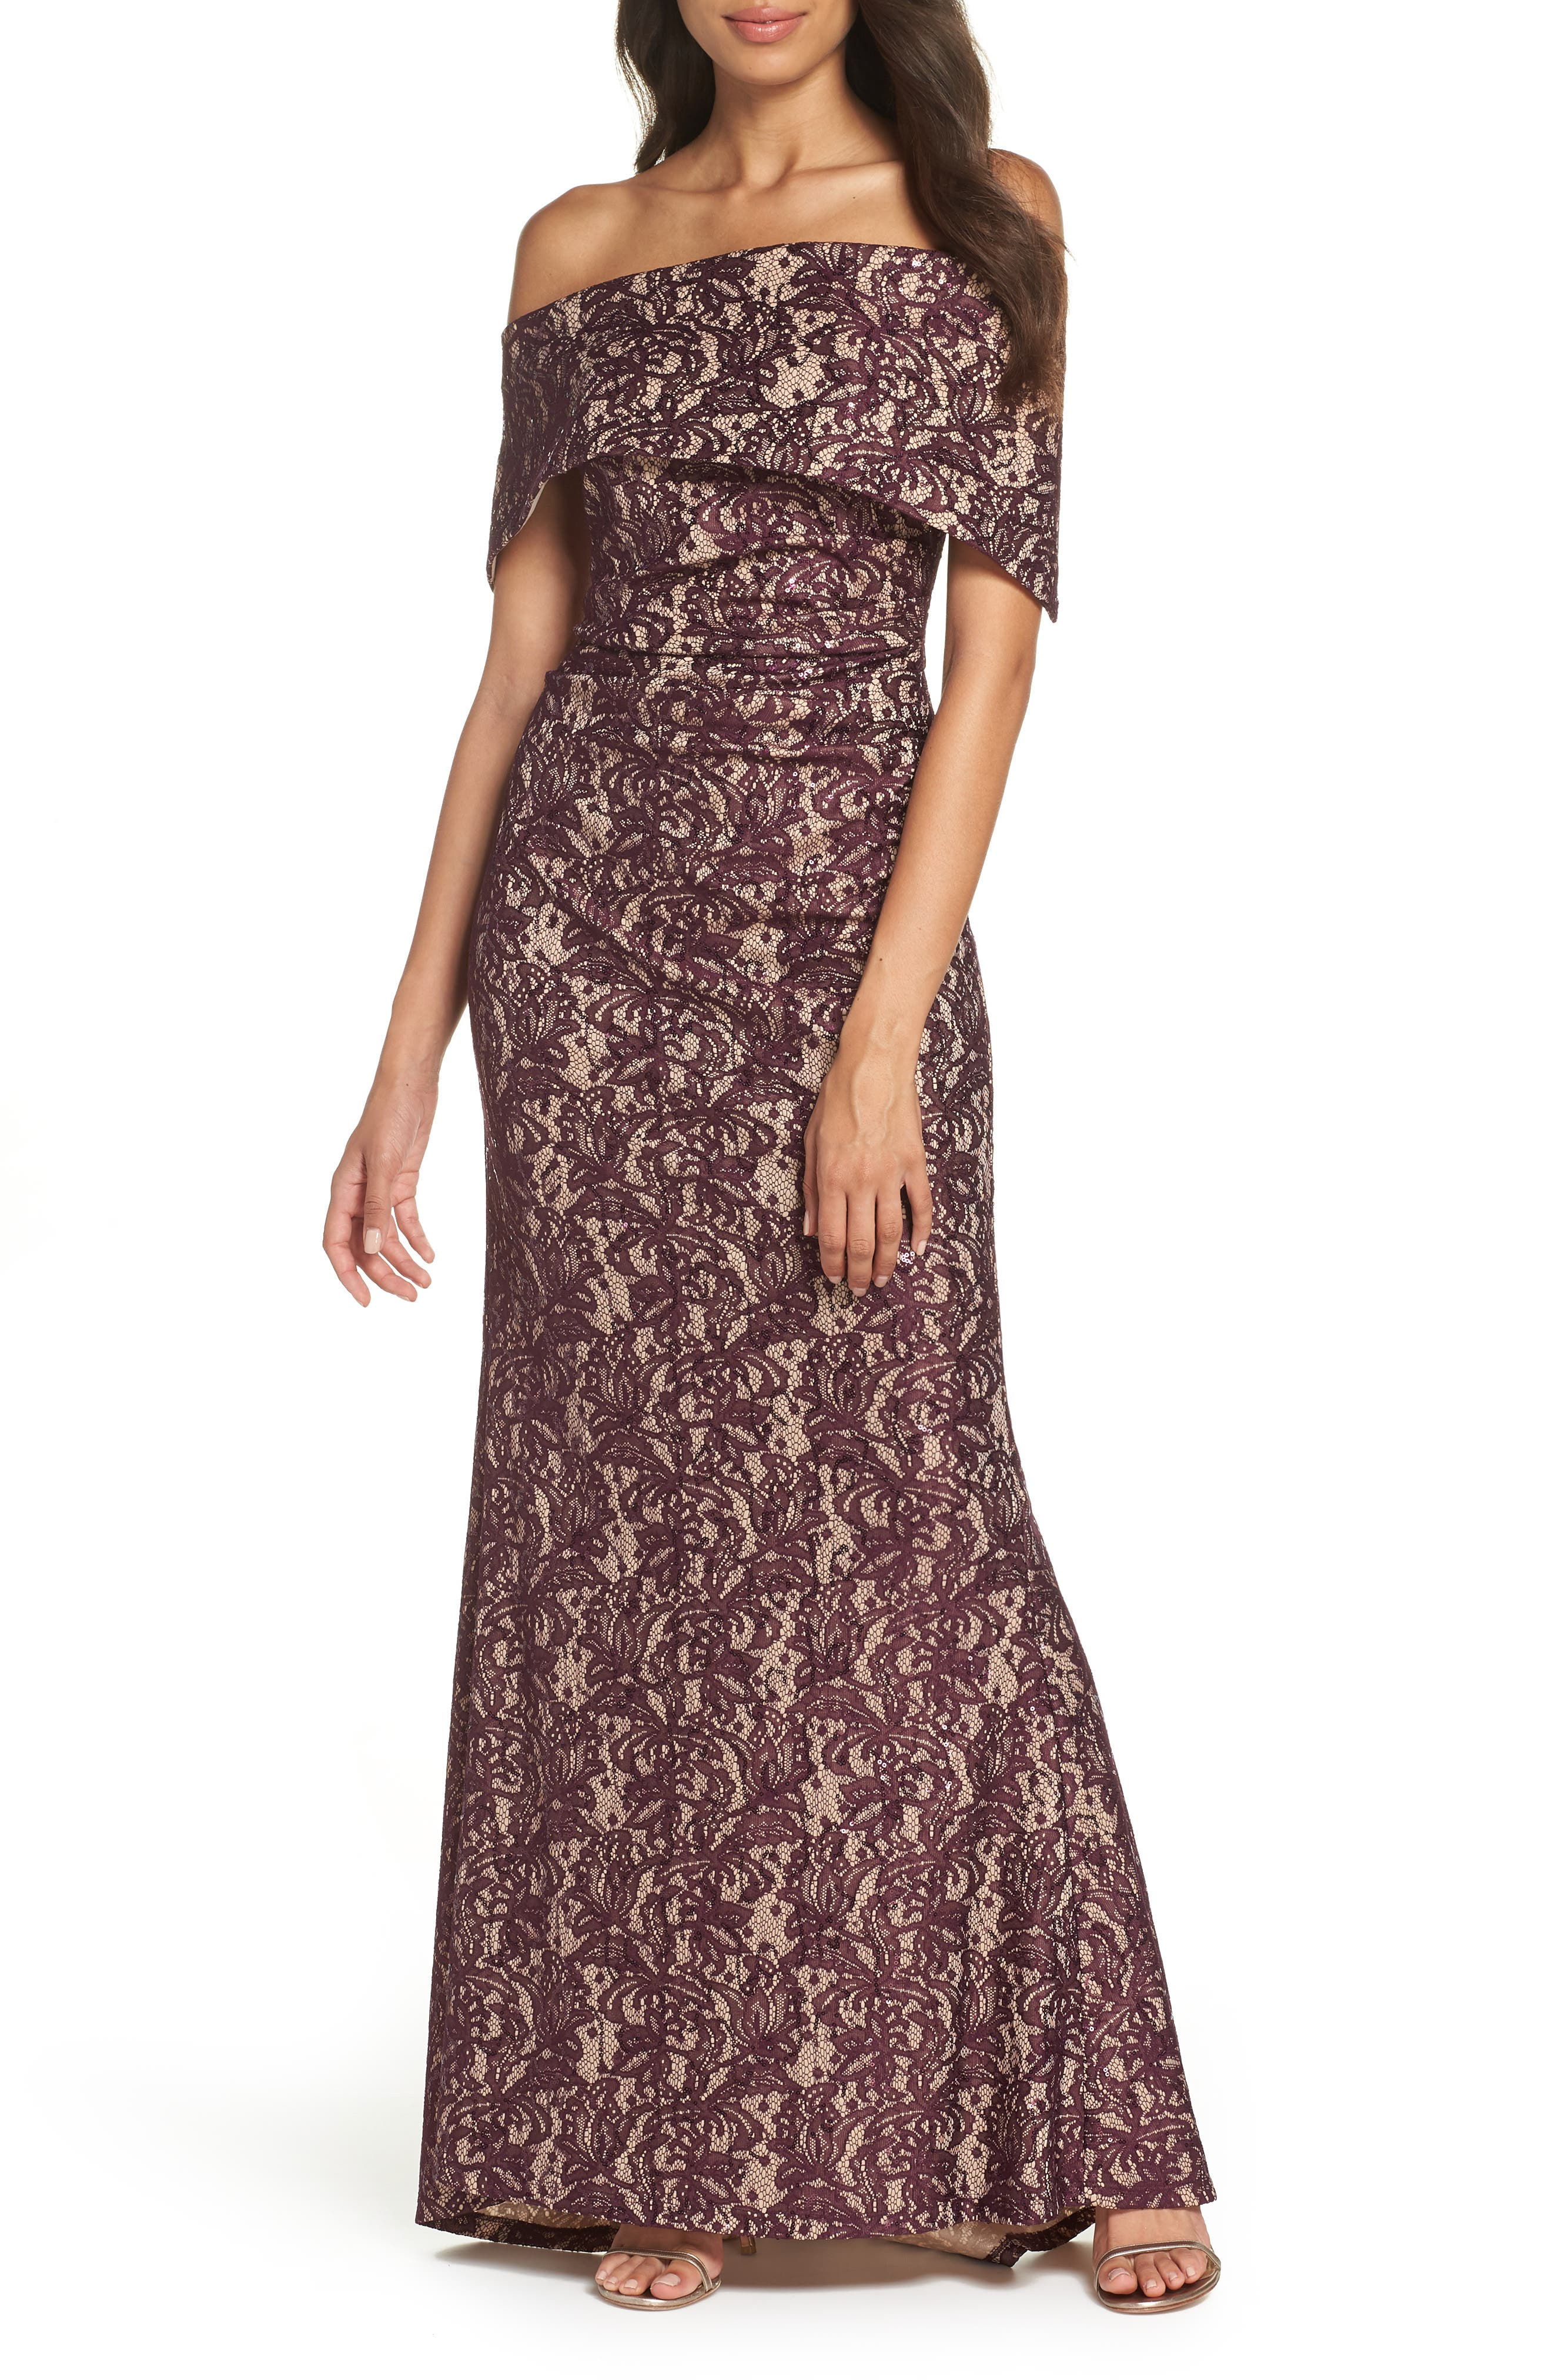 VINCE CAMUTO, Sequin Off the Shoulder Gown, Main thumbnail 1, color, WINE